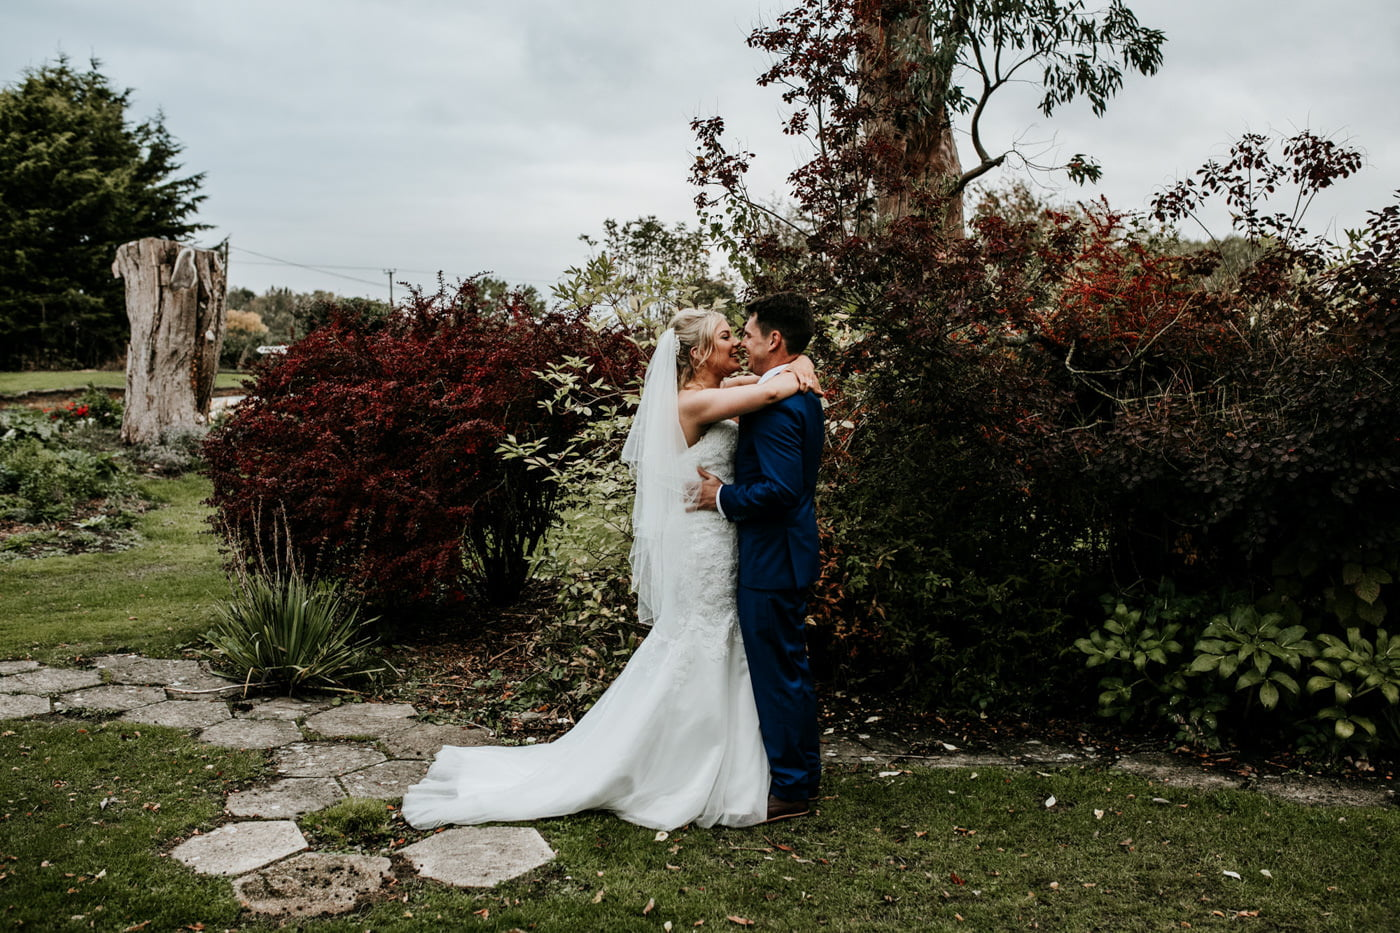 Natalie and Rob, Widbrook Grange, Wiltshire 11